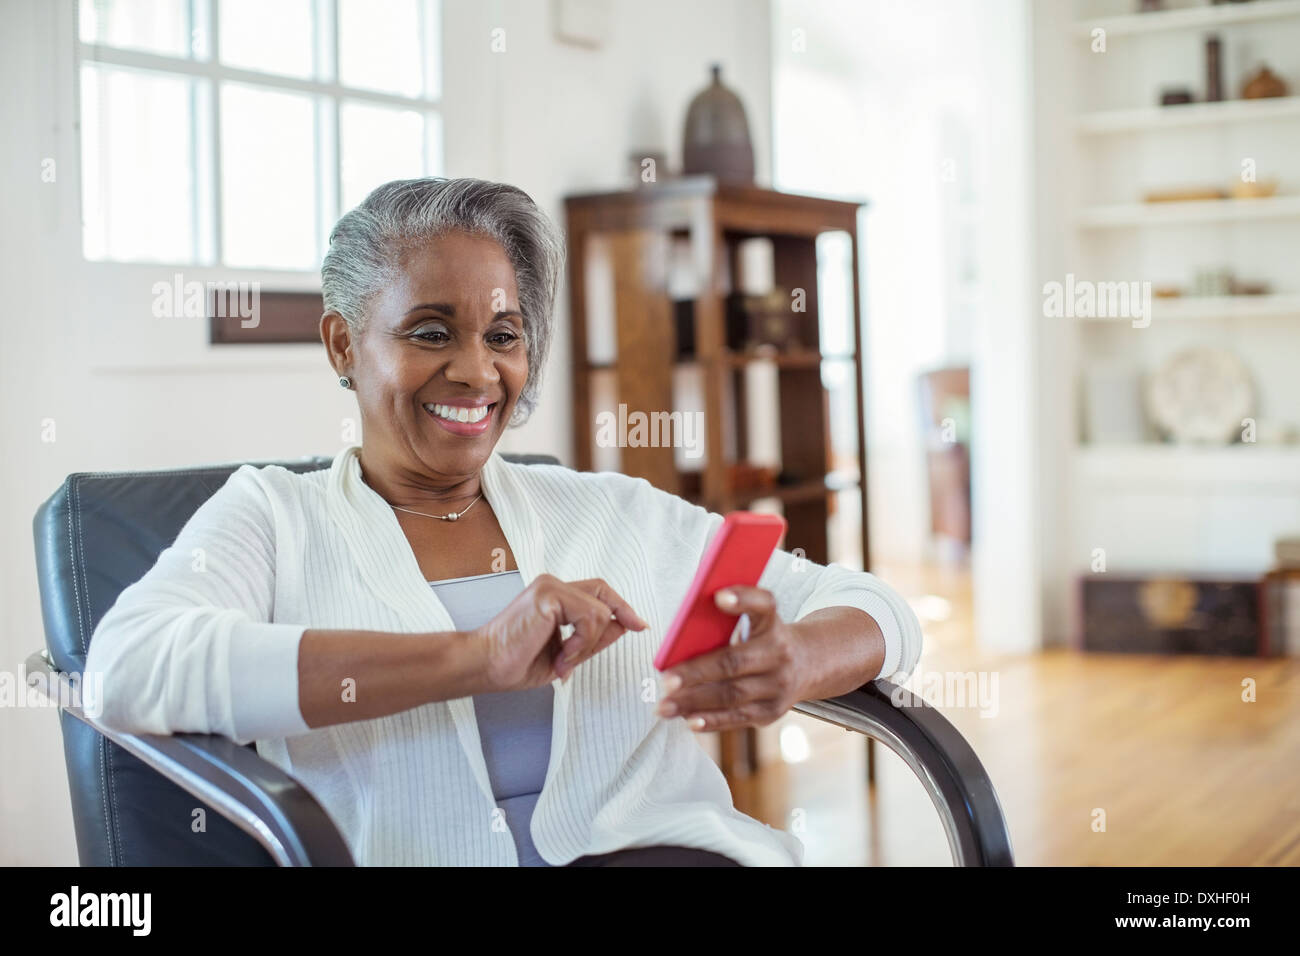 Happy senior woman text messaging with cell phone in living room - Stock Image